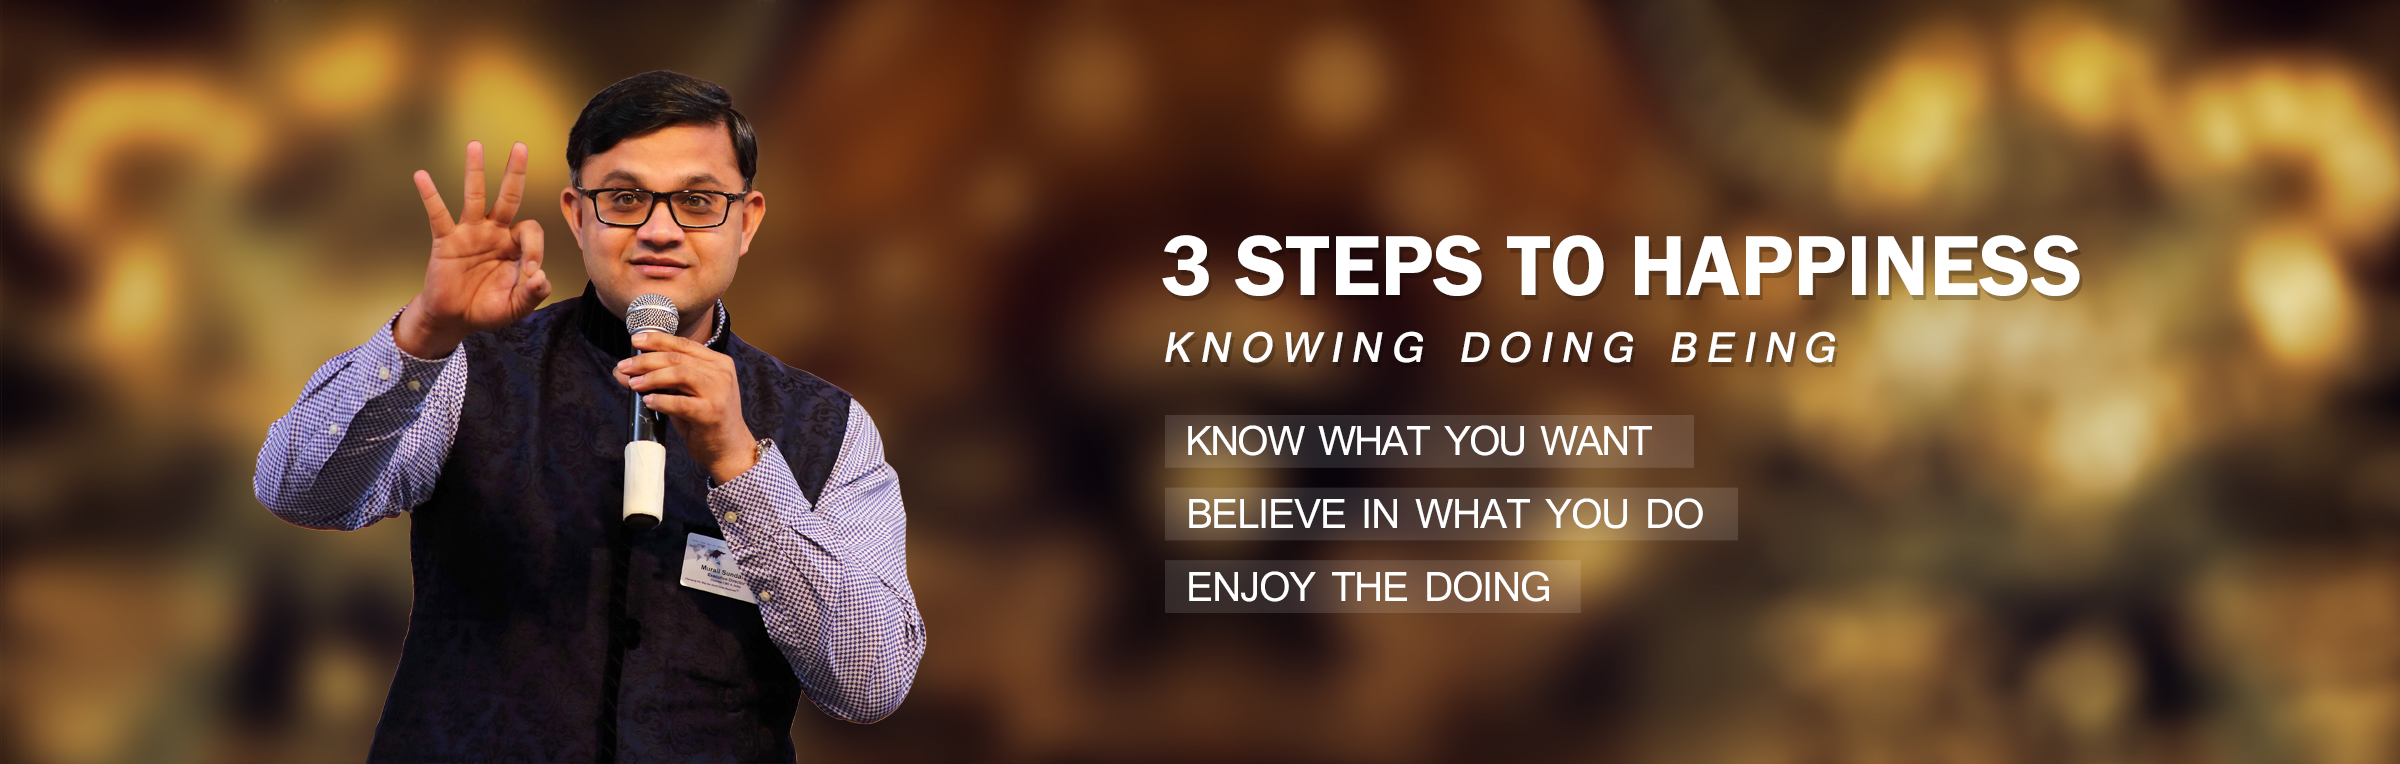 Top 3 Steps to Real Happiness